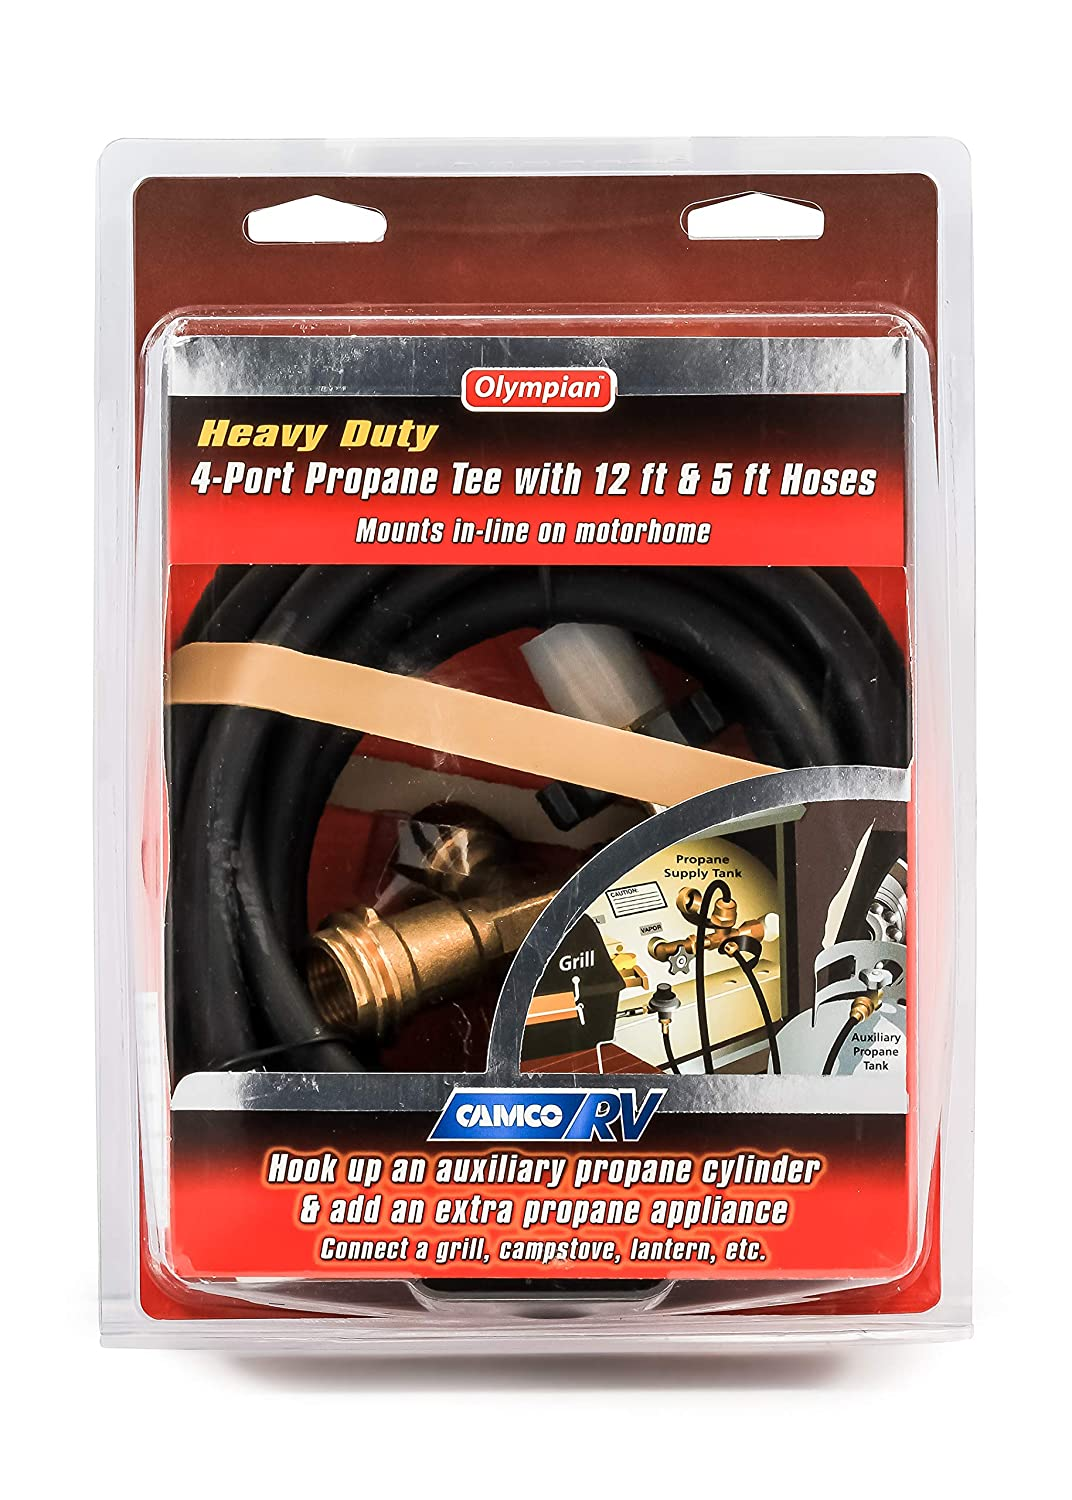 Camco Propane Brass 4 Port Tee Comes With 5ft And 12ft Motorhome Furnace Wiring Diagram Hoses Allows For Connection Between Auxiliary Cylinder Appliances